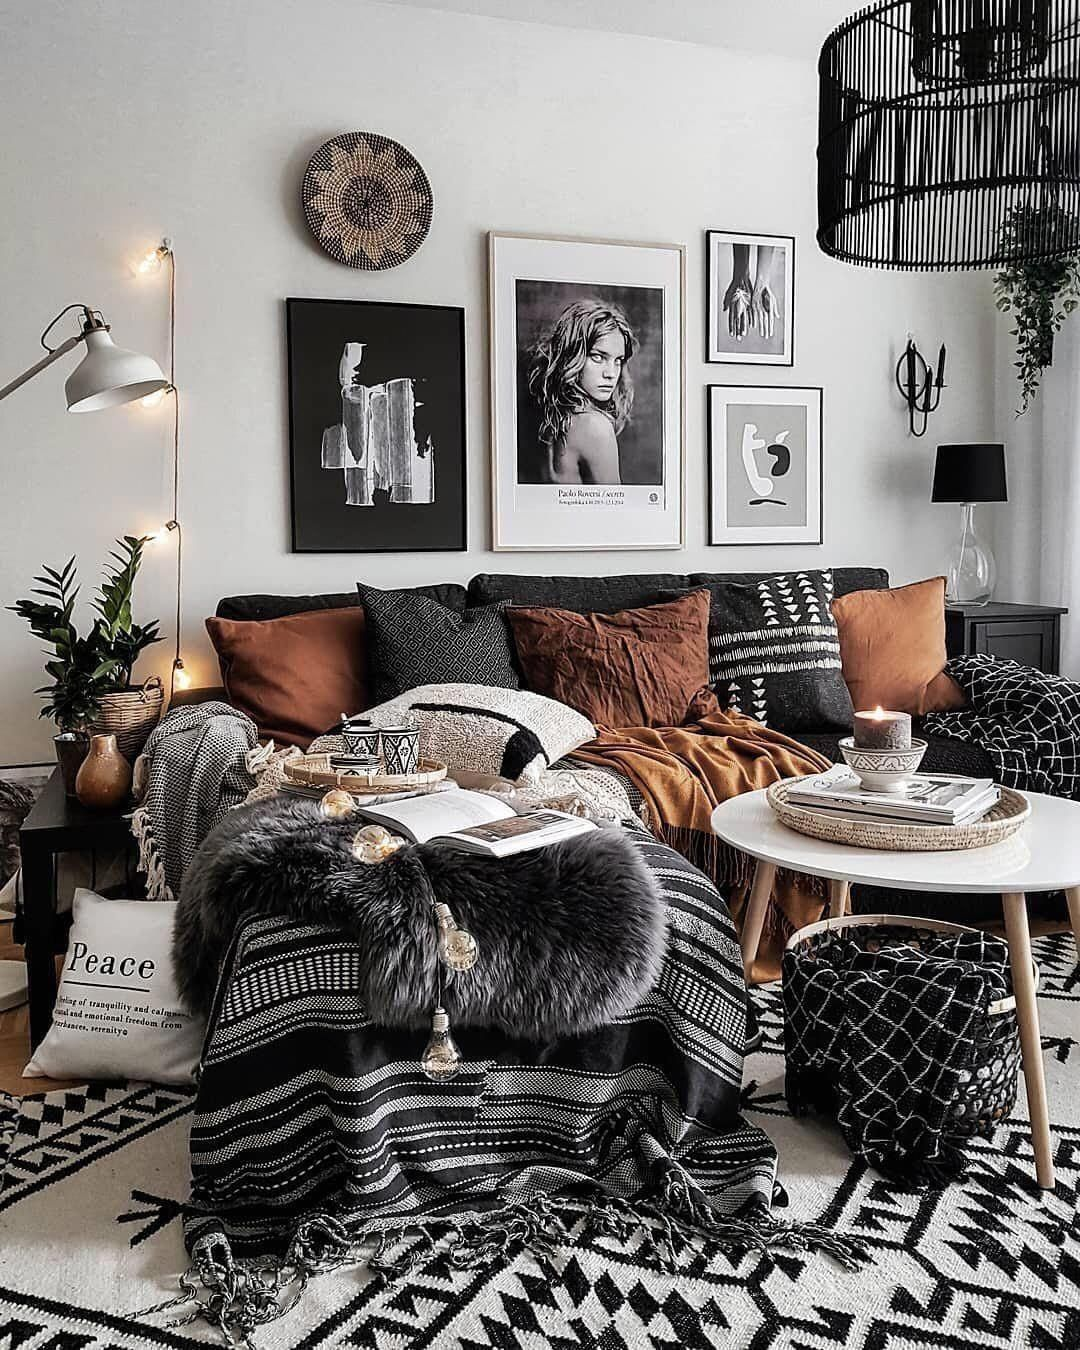 Homemodern House Design: Uniqfind On Instagram: The Definition Of Cozy Via @mk